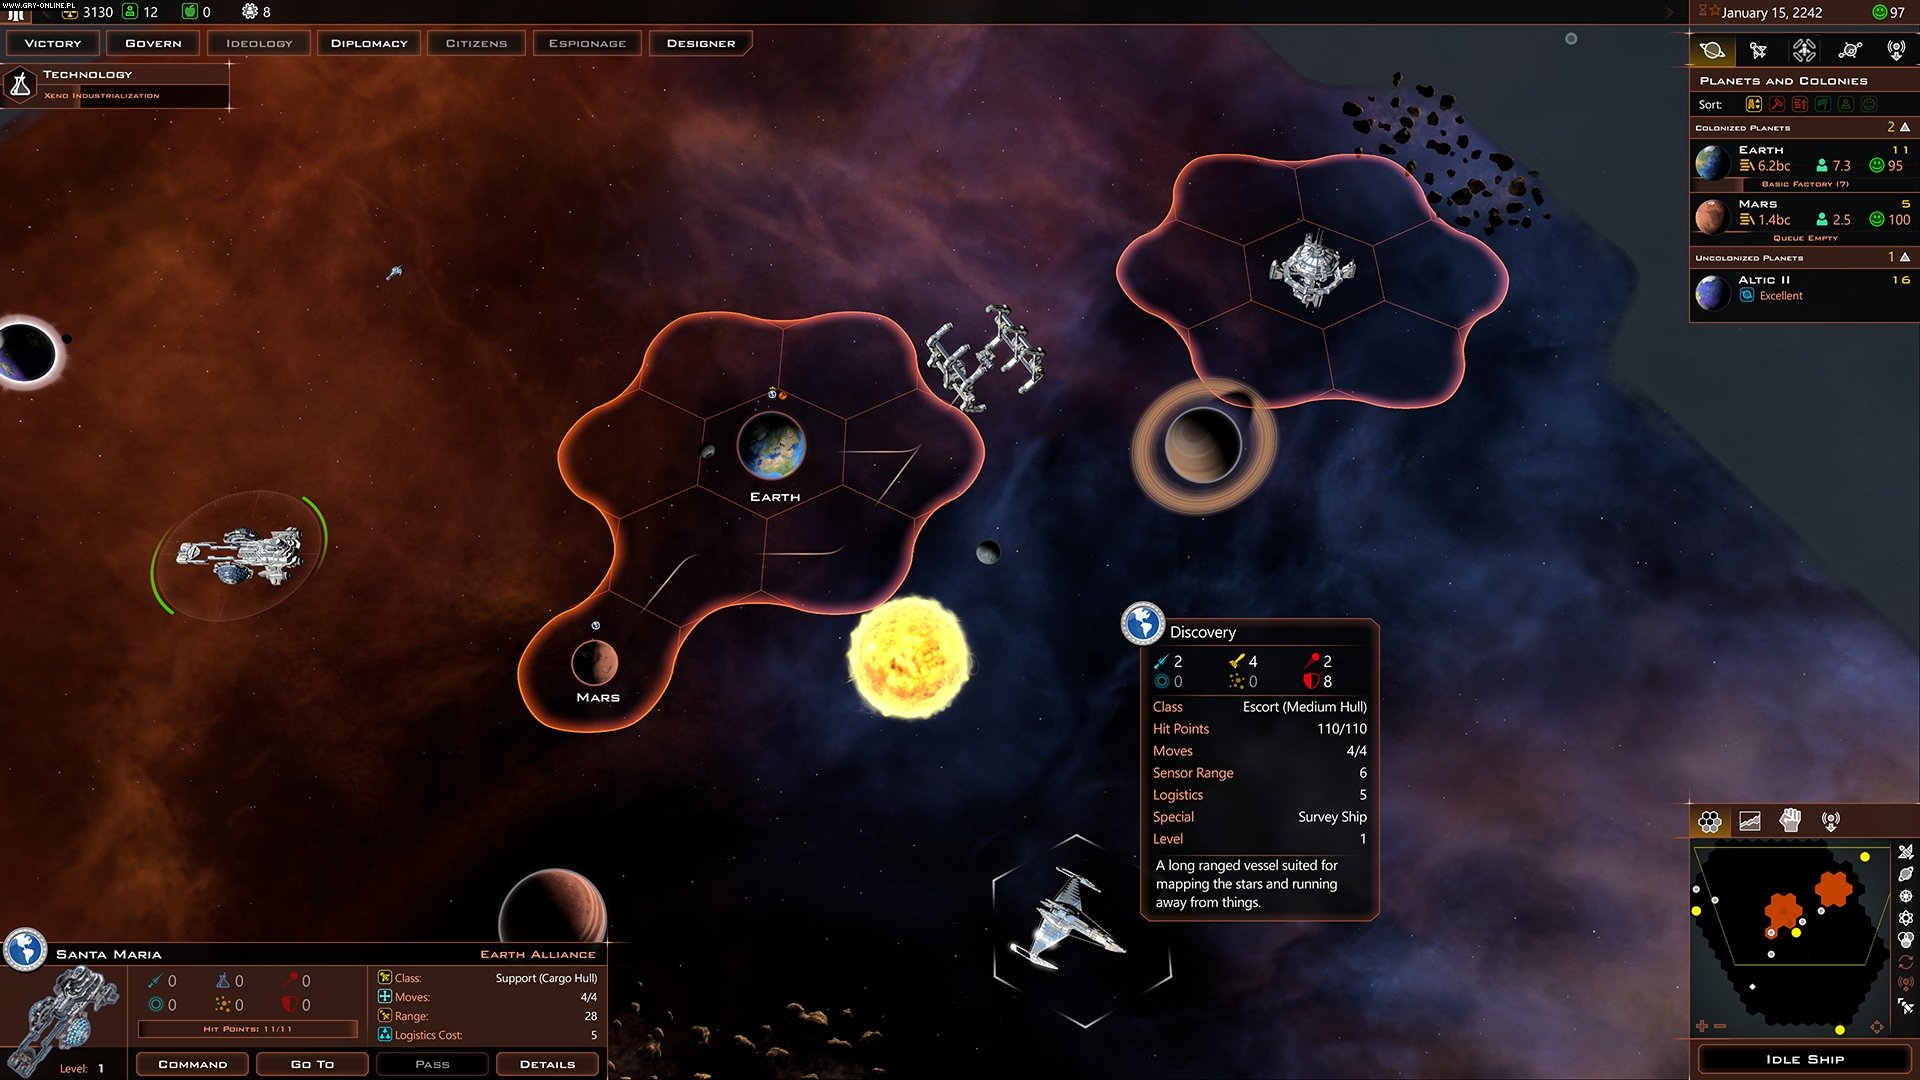 Galactic Civilizations III: Crusade PC Games Image 4/4, Stardock Corporation